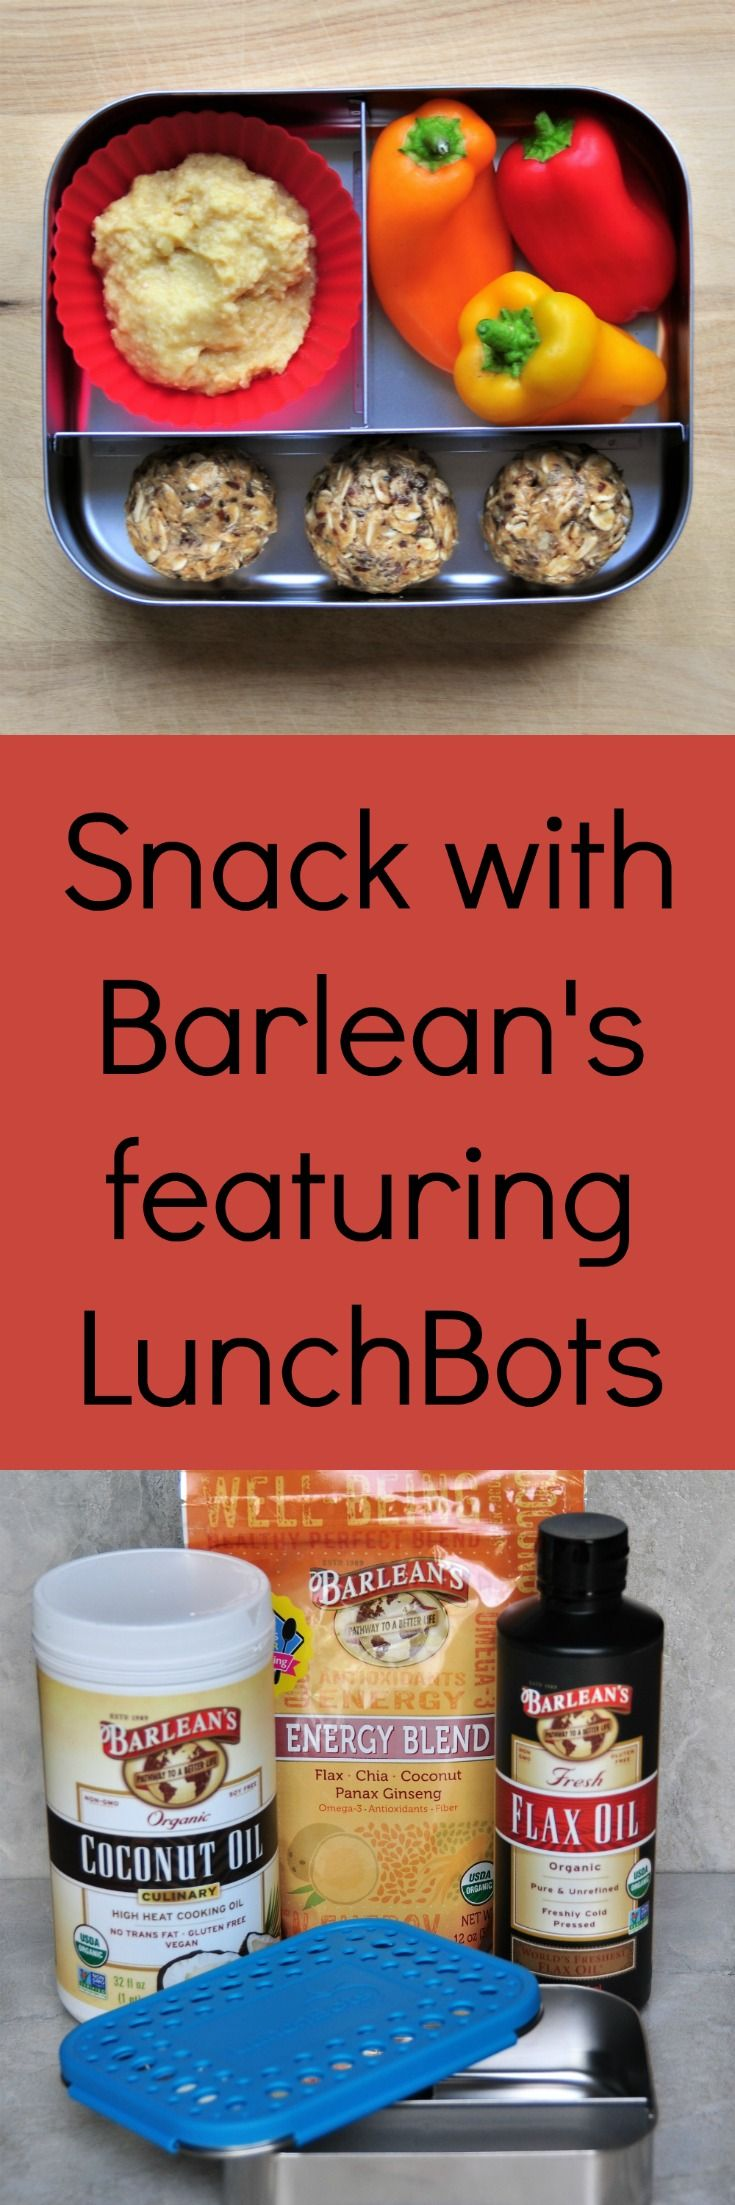 Snack with Barlean's featuring LunchBots